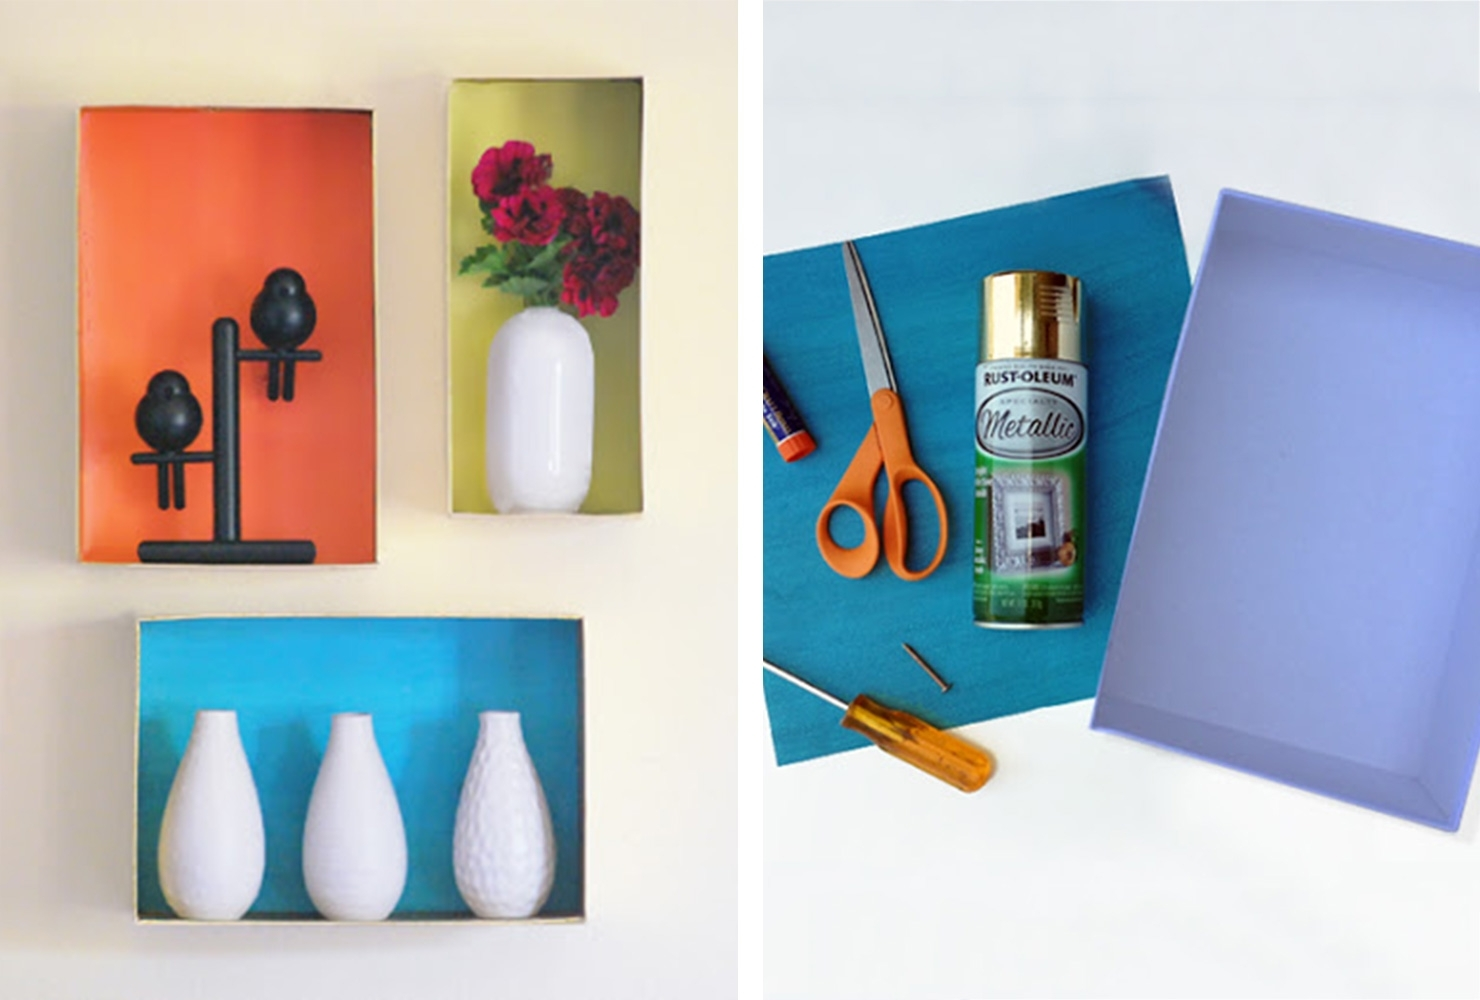 25 Unique Diy Wall Art Ideas (With Printables) | Shutterfly Pertaining To Diy Wall Art (Photo 7 of 20)